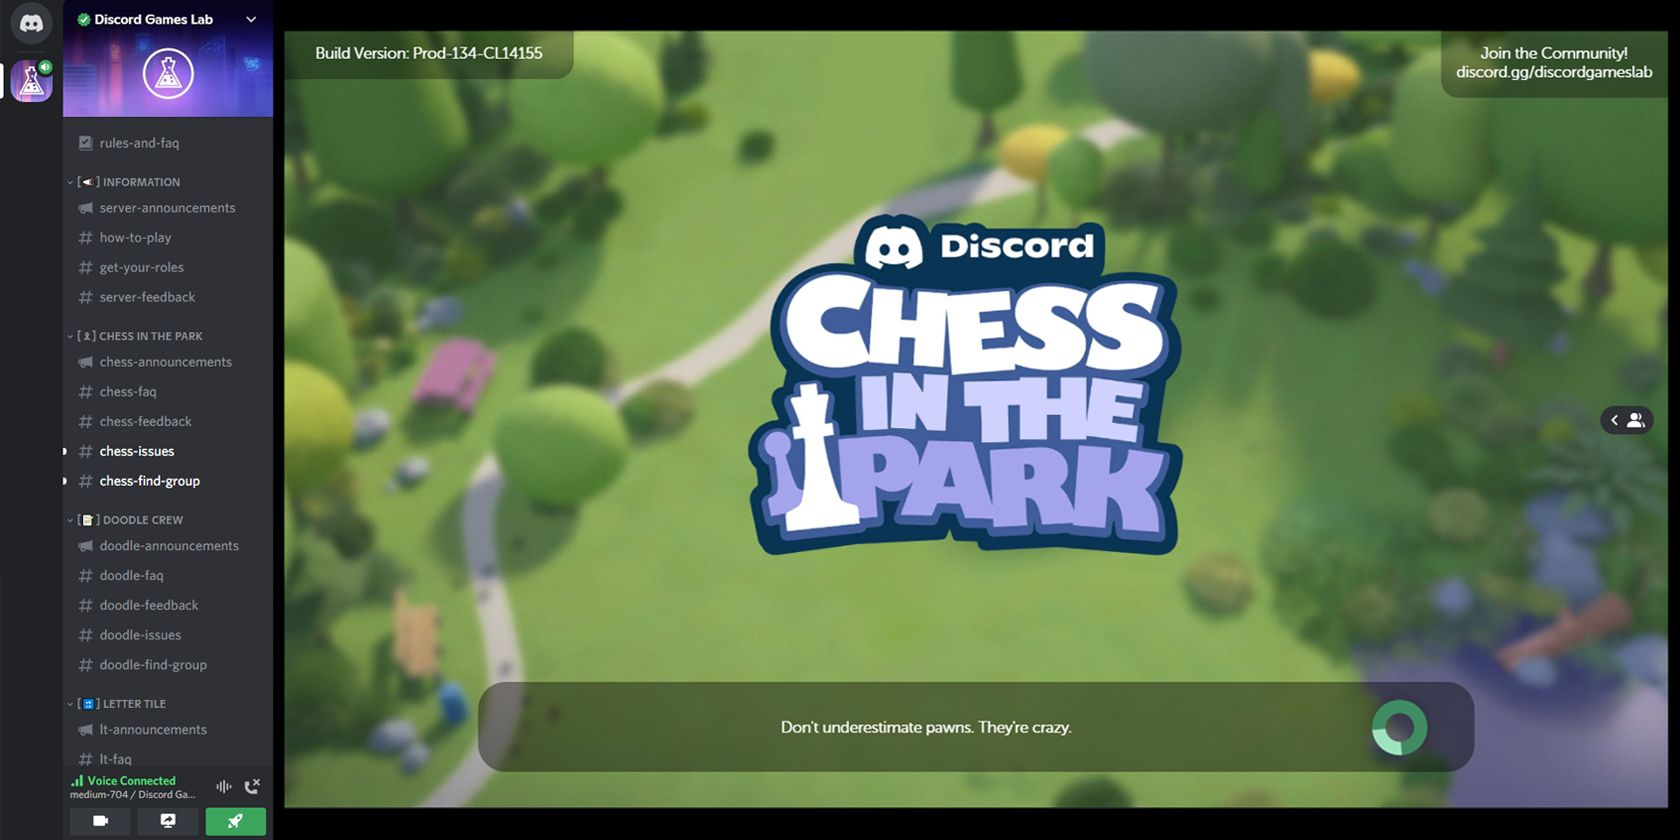 How to Play Channel Games on Discord (Including Chess and Poker)